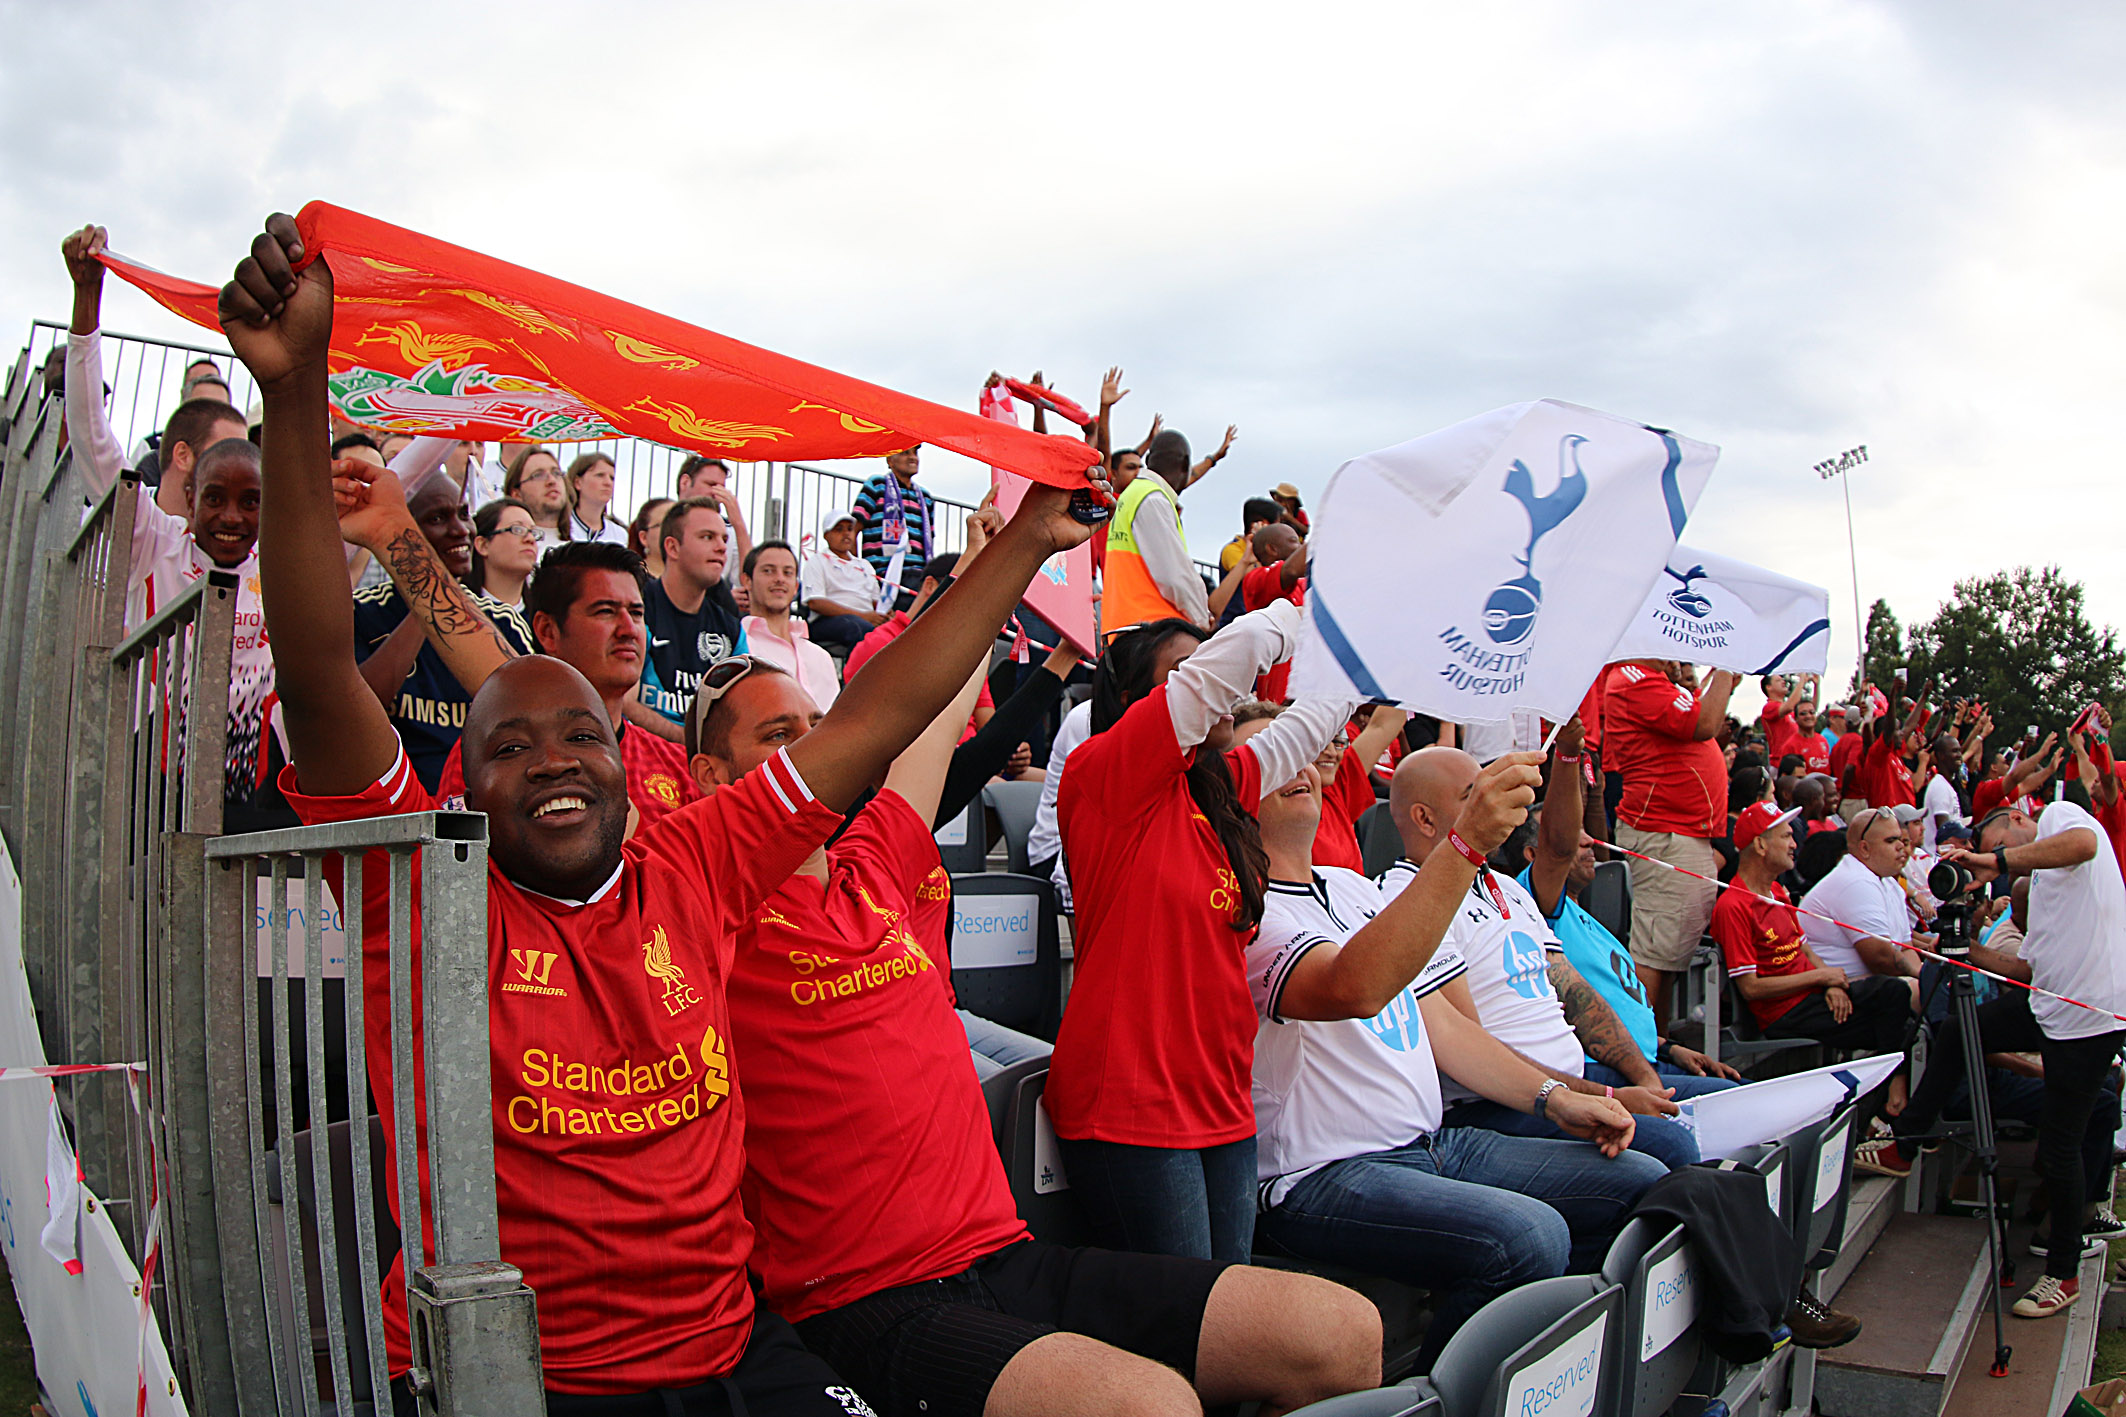 Liverpool and Tottenham Hotspur fans watch their teams clash at the Barclays Premier League Live fan park in Johannesburg on Sunday (30 March) (Photo from Barclays Premier League)